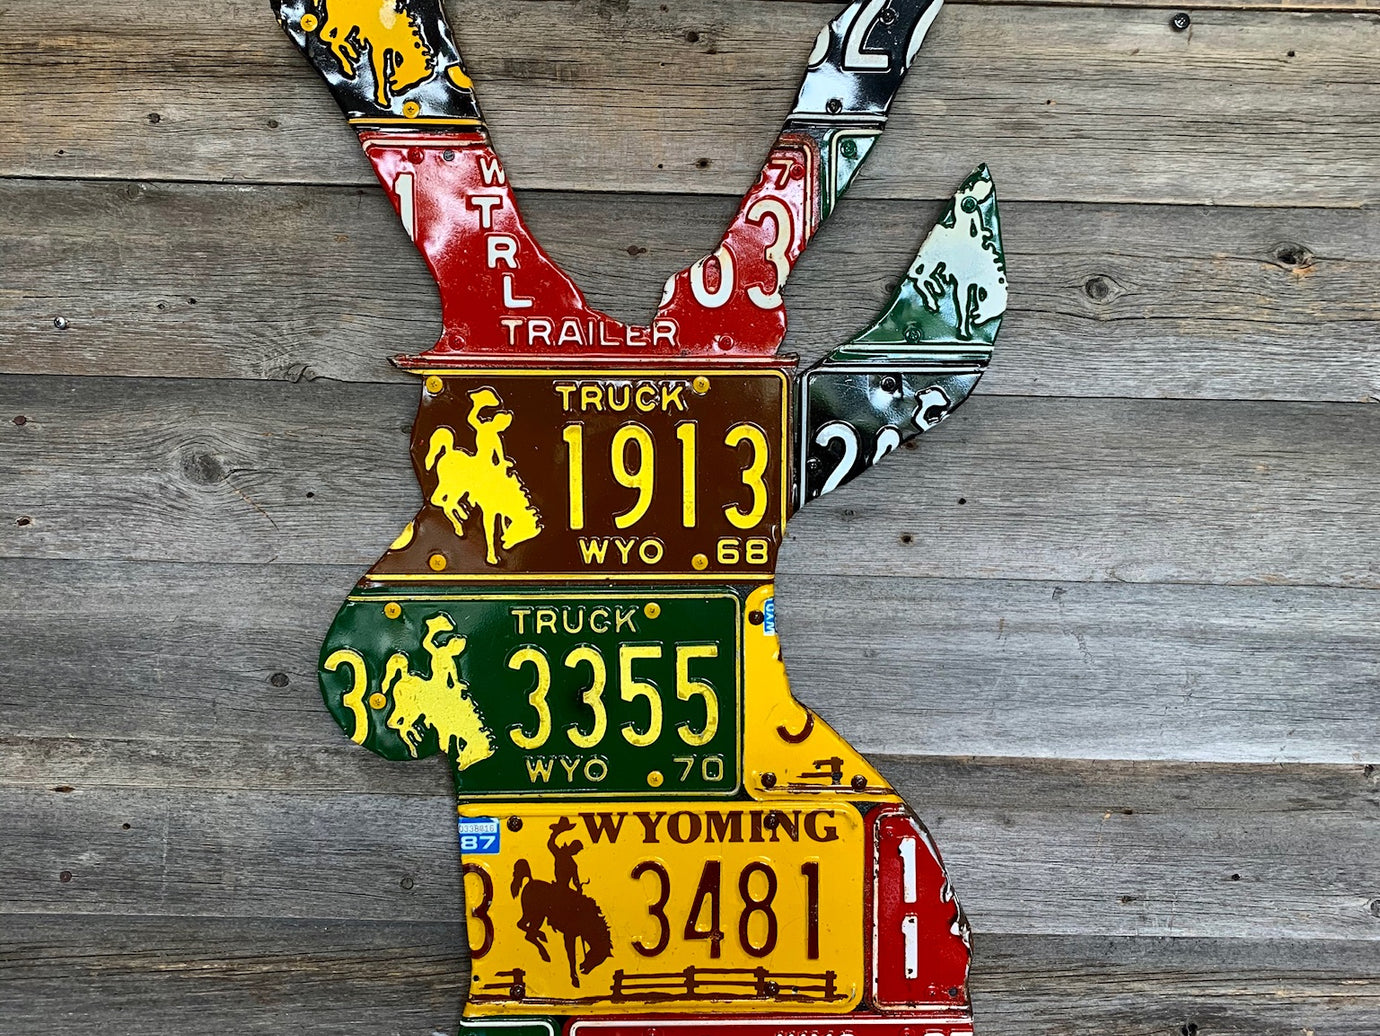 Wyoming Pronghorn Antelope License Plate Art